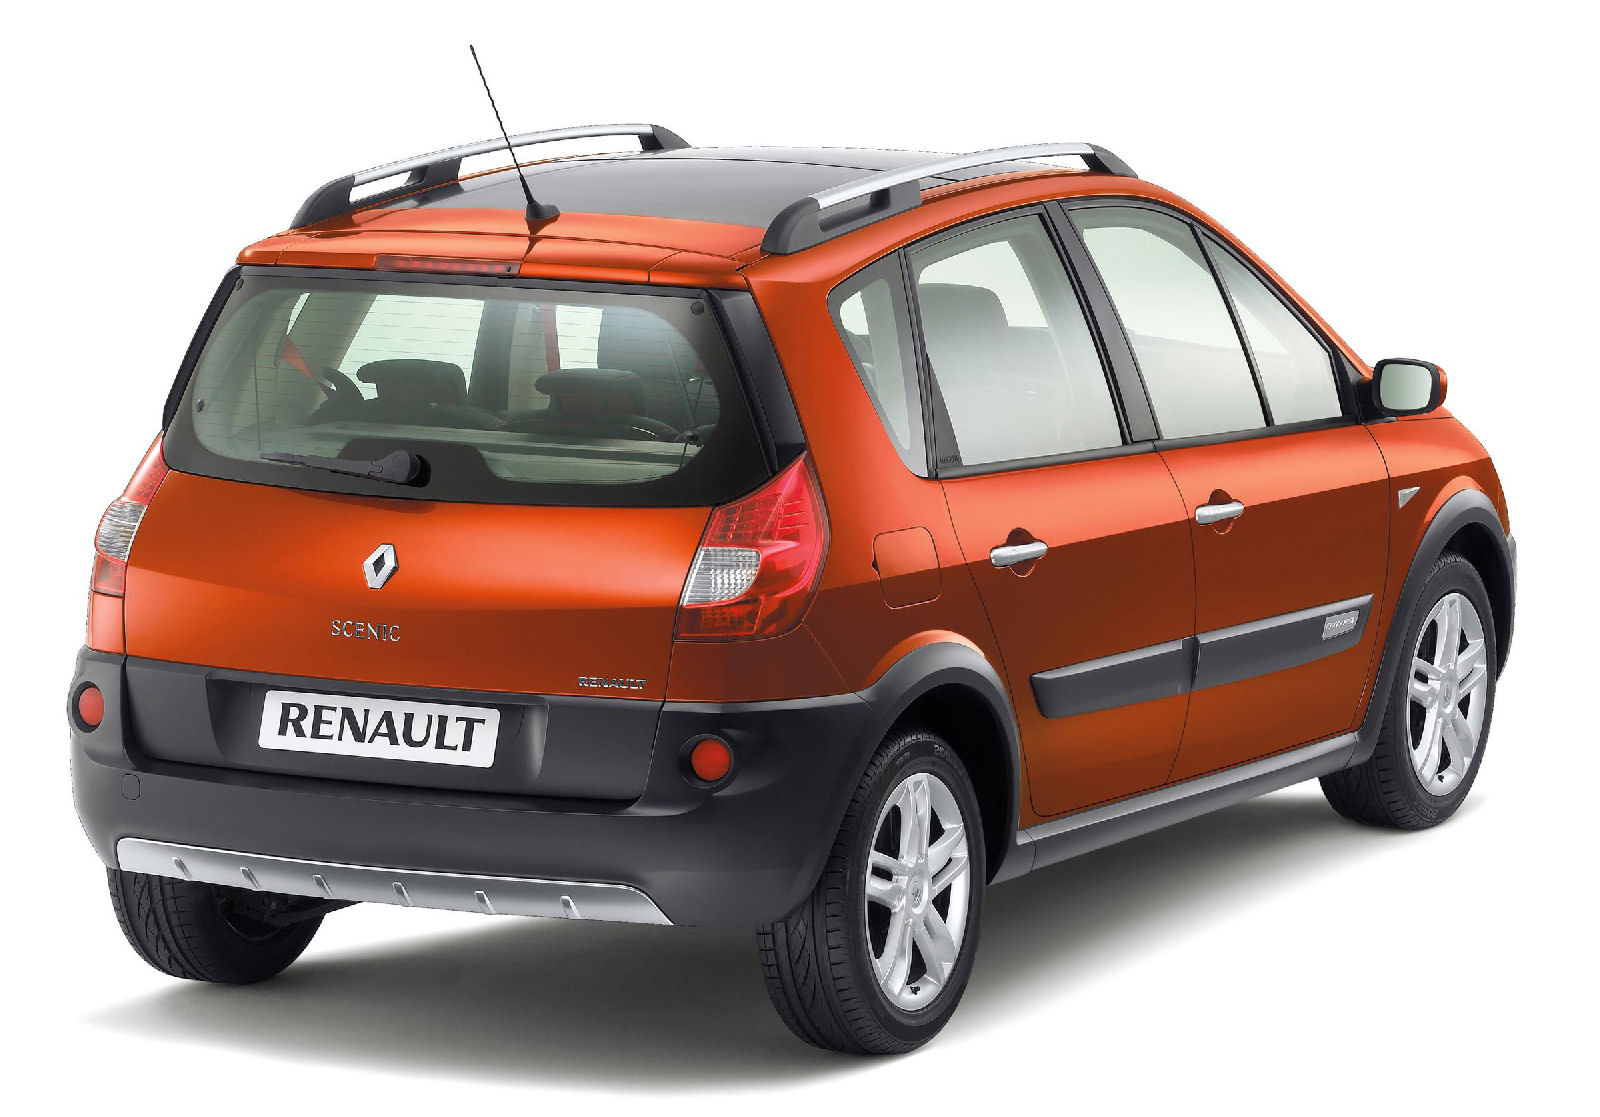 rouge_S0-Renault-Scenic-Conquest-Rancho-moderne-73284